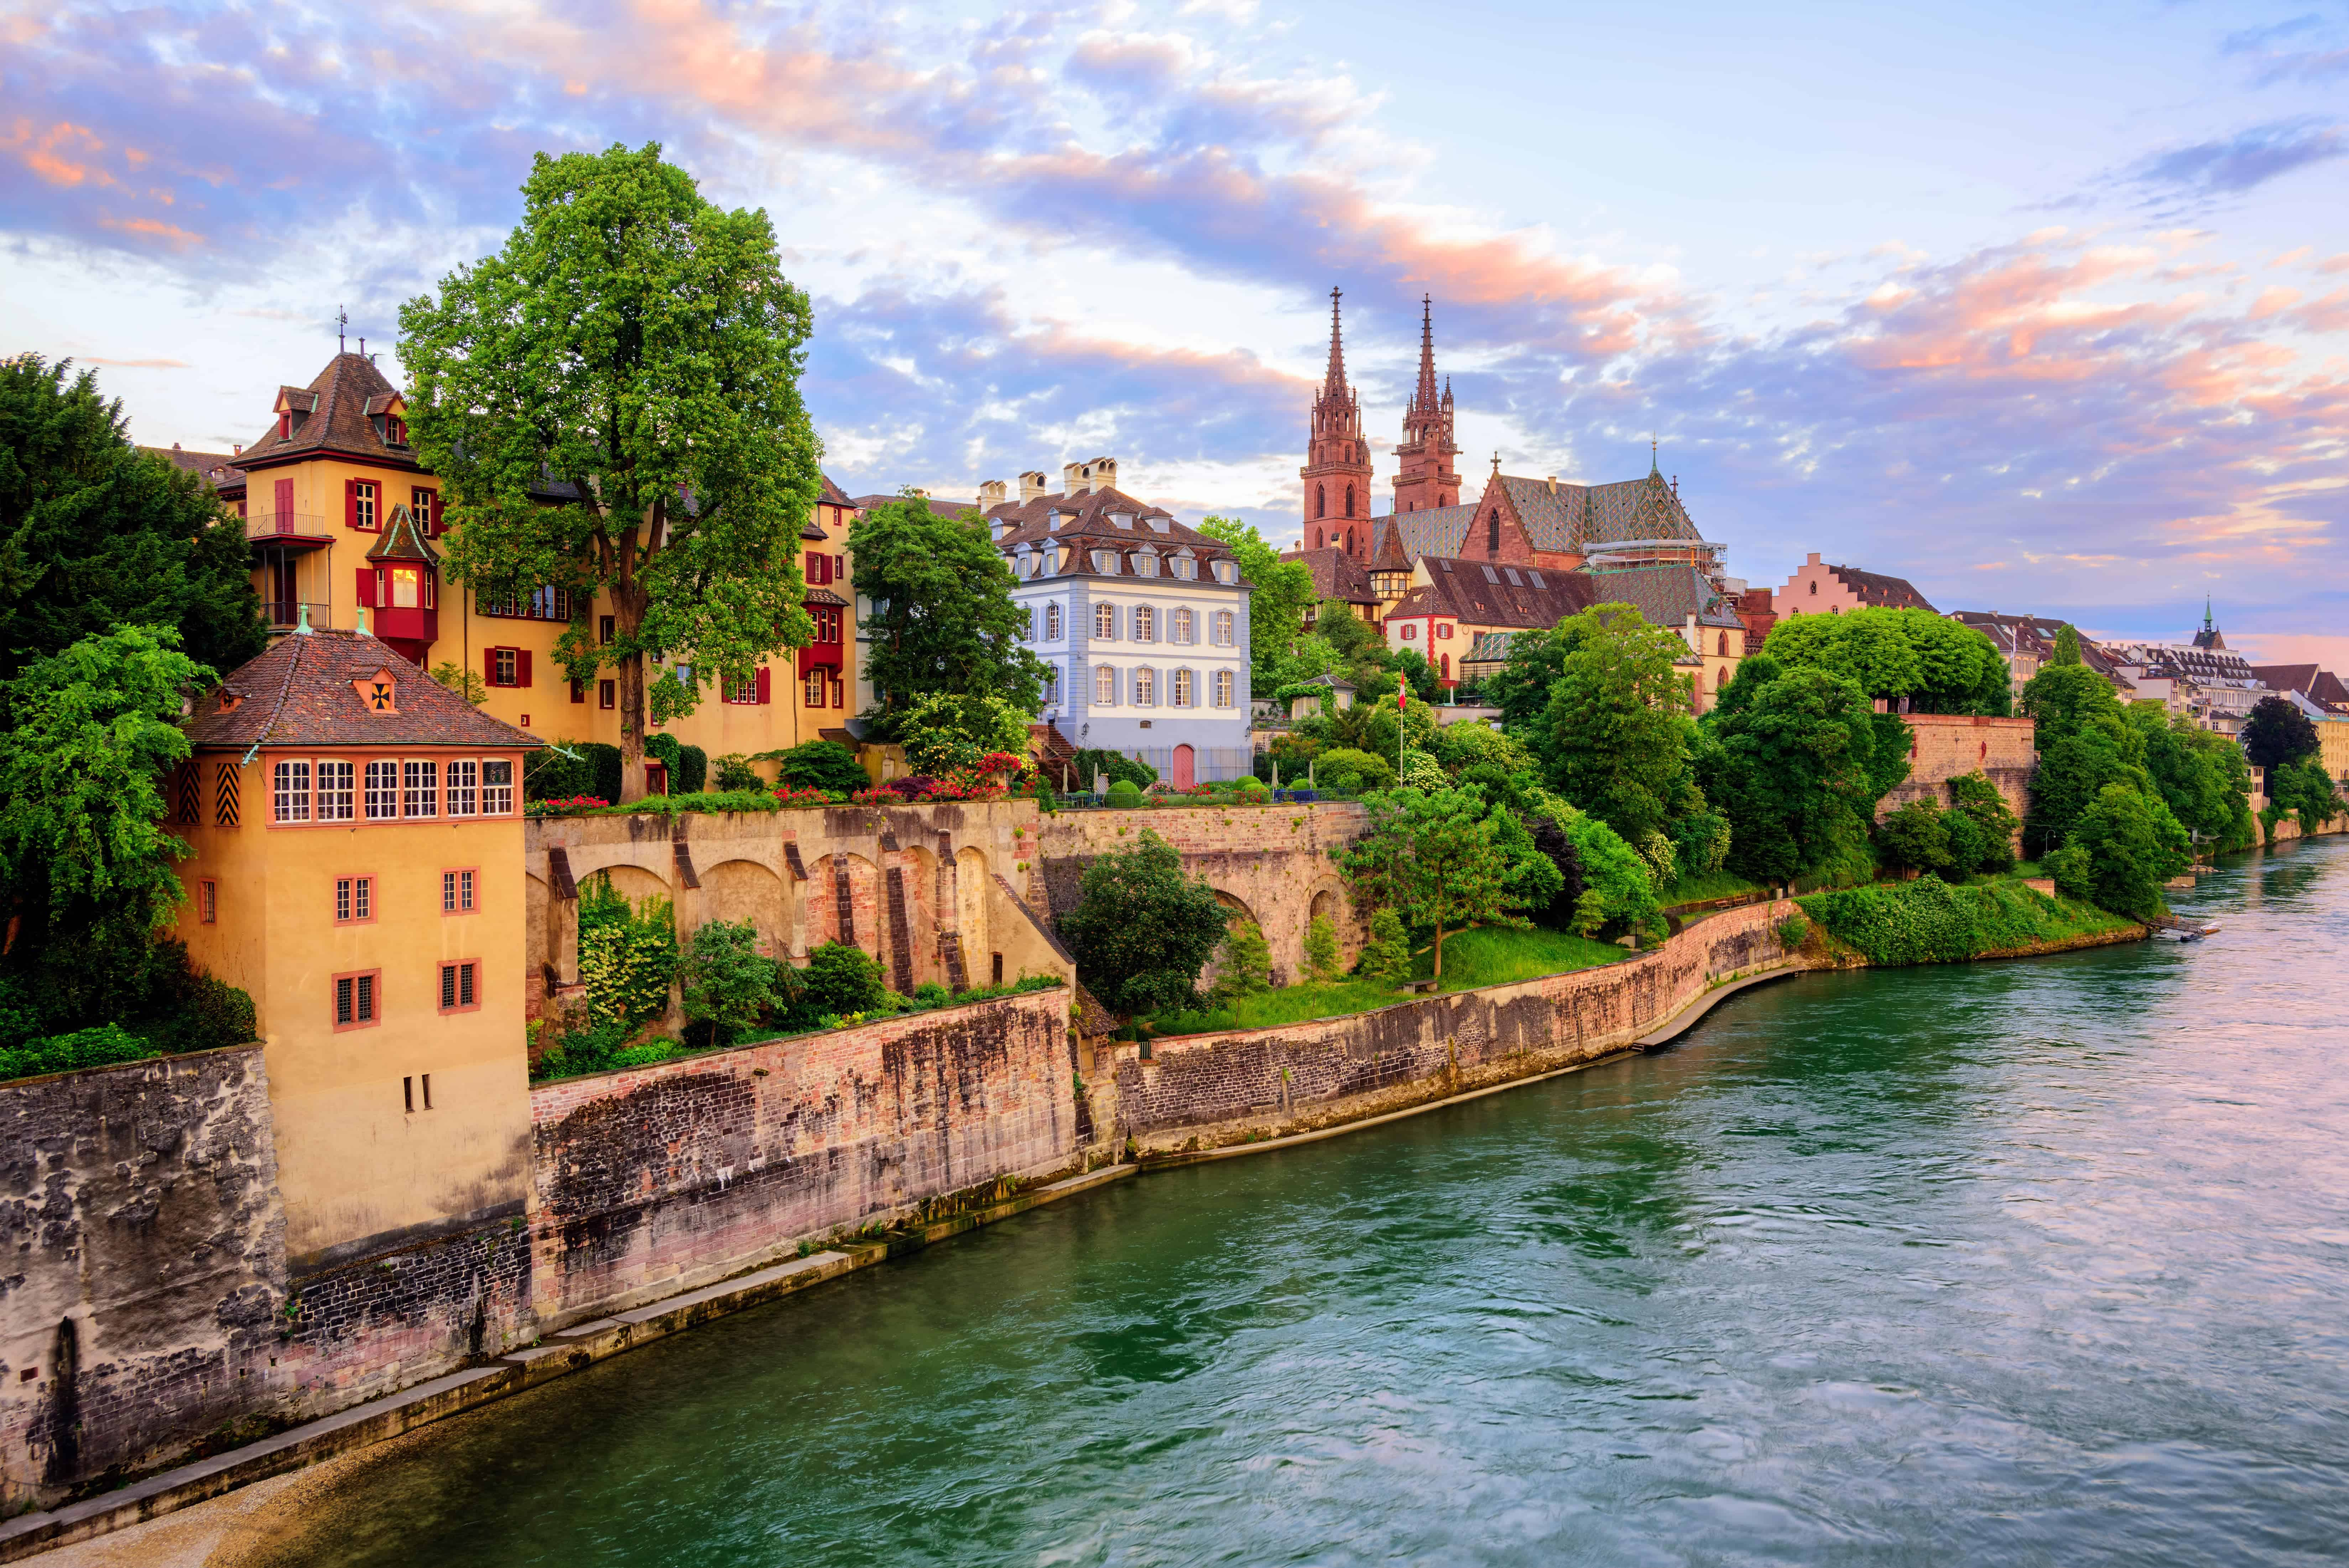 Basel | Culinary heritage of Switzerland